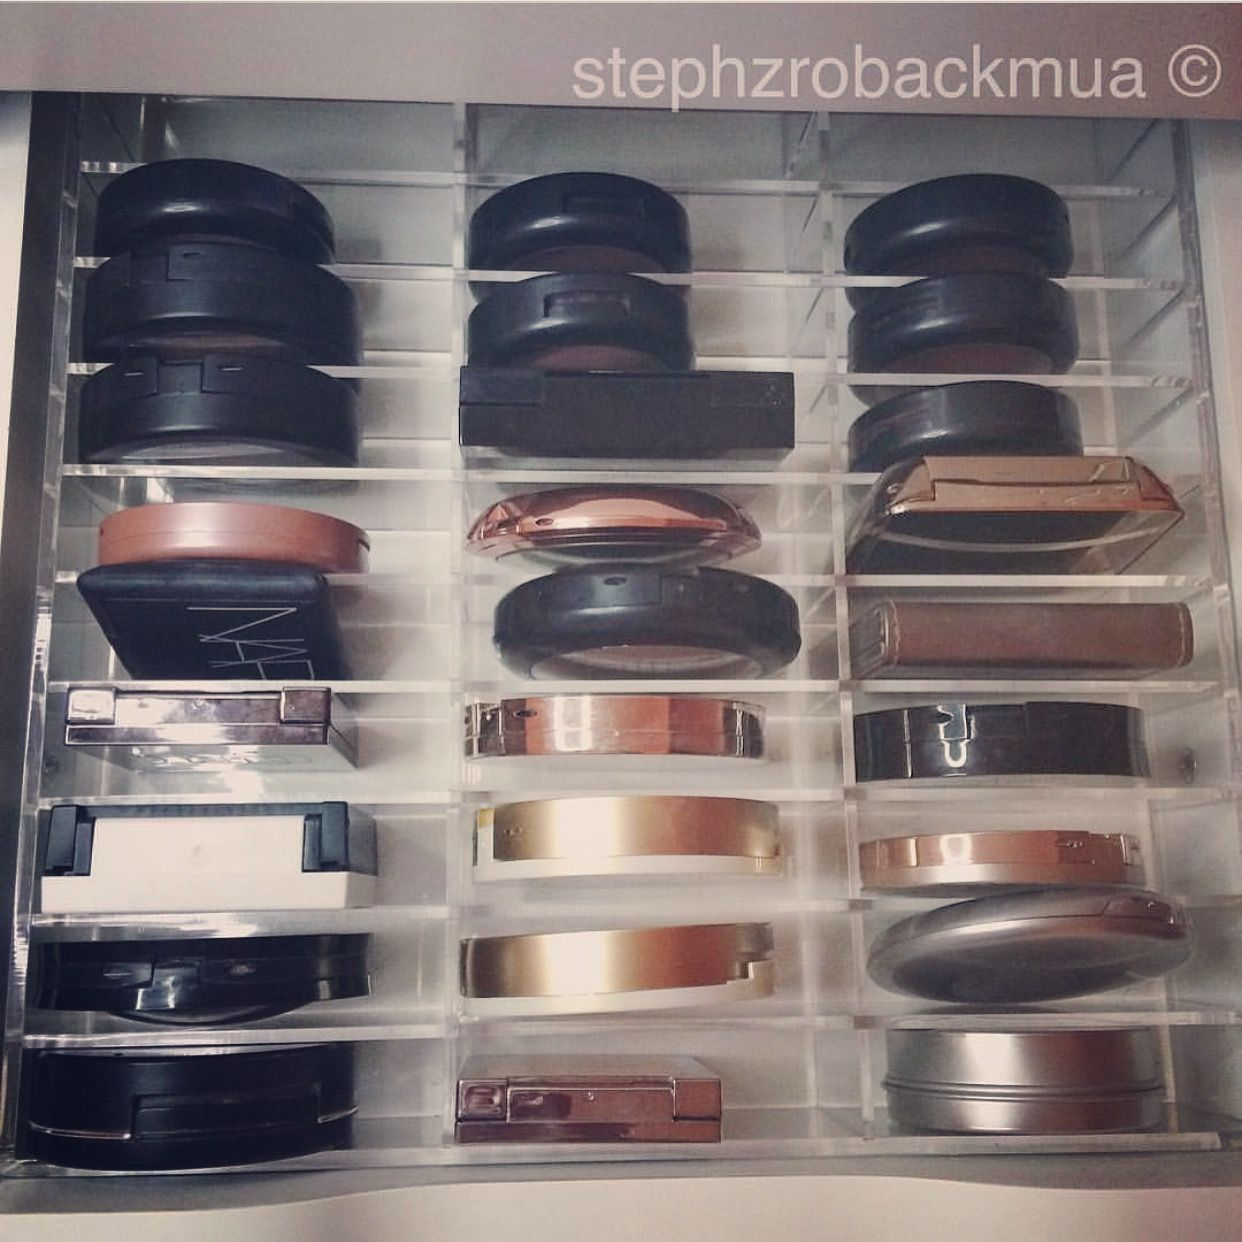 Photo Album For Website Alex pact organizer Made of the highest quality acrylic specifically designed for the IKEA